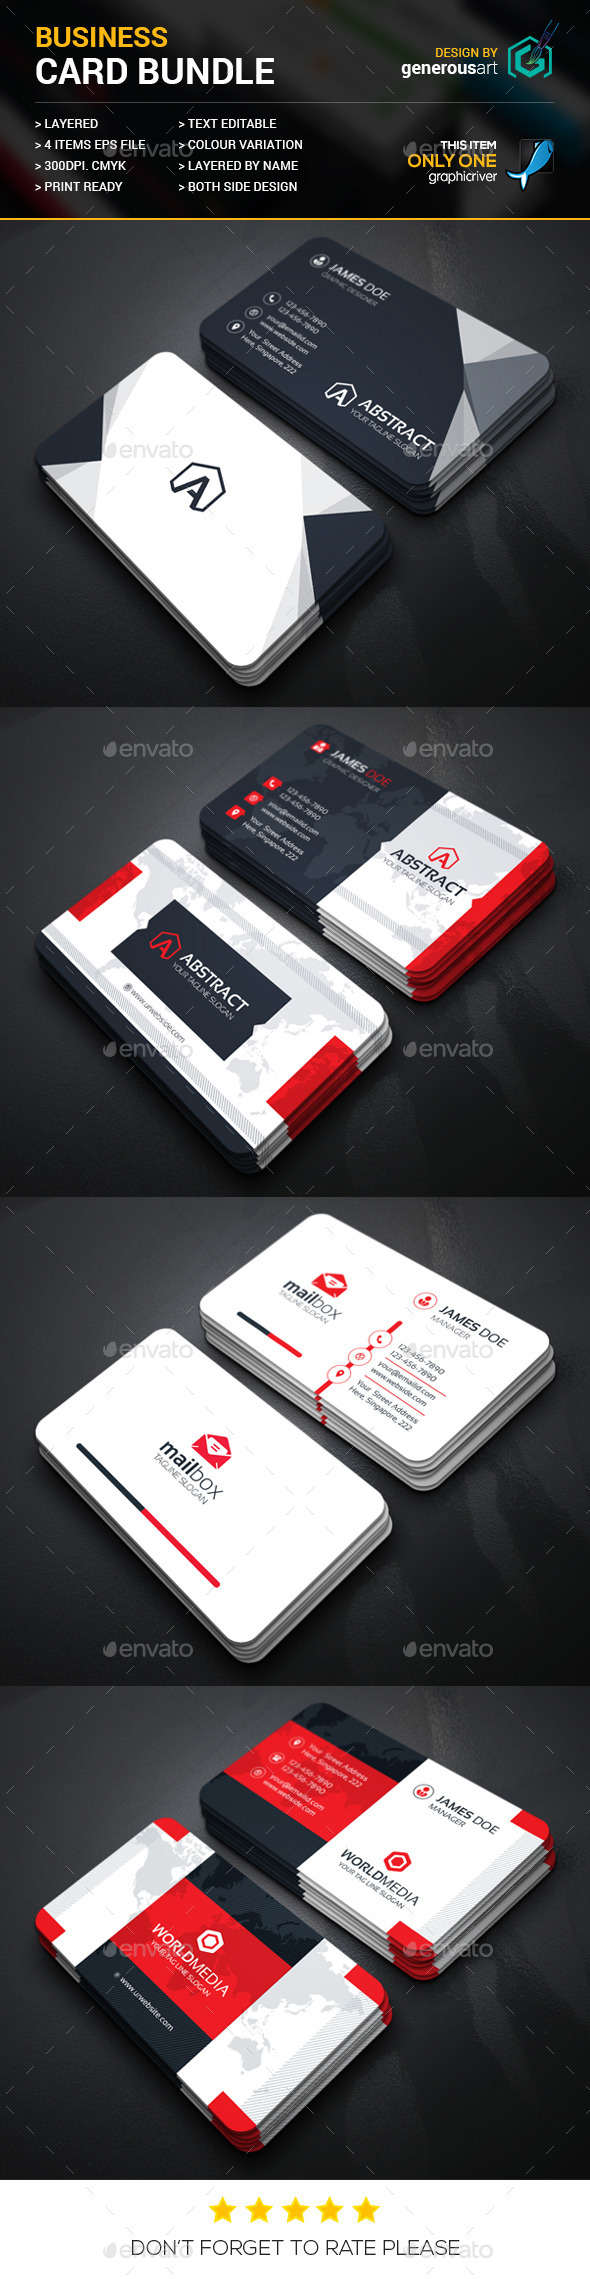 Business Card Bundle 4 in 1 Vol.22